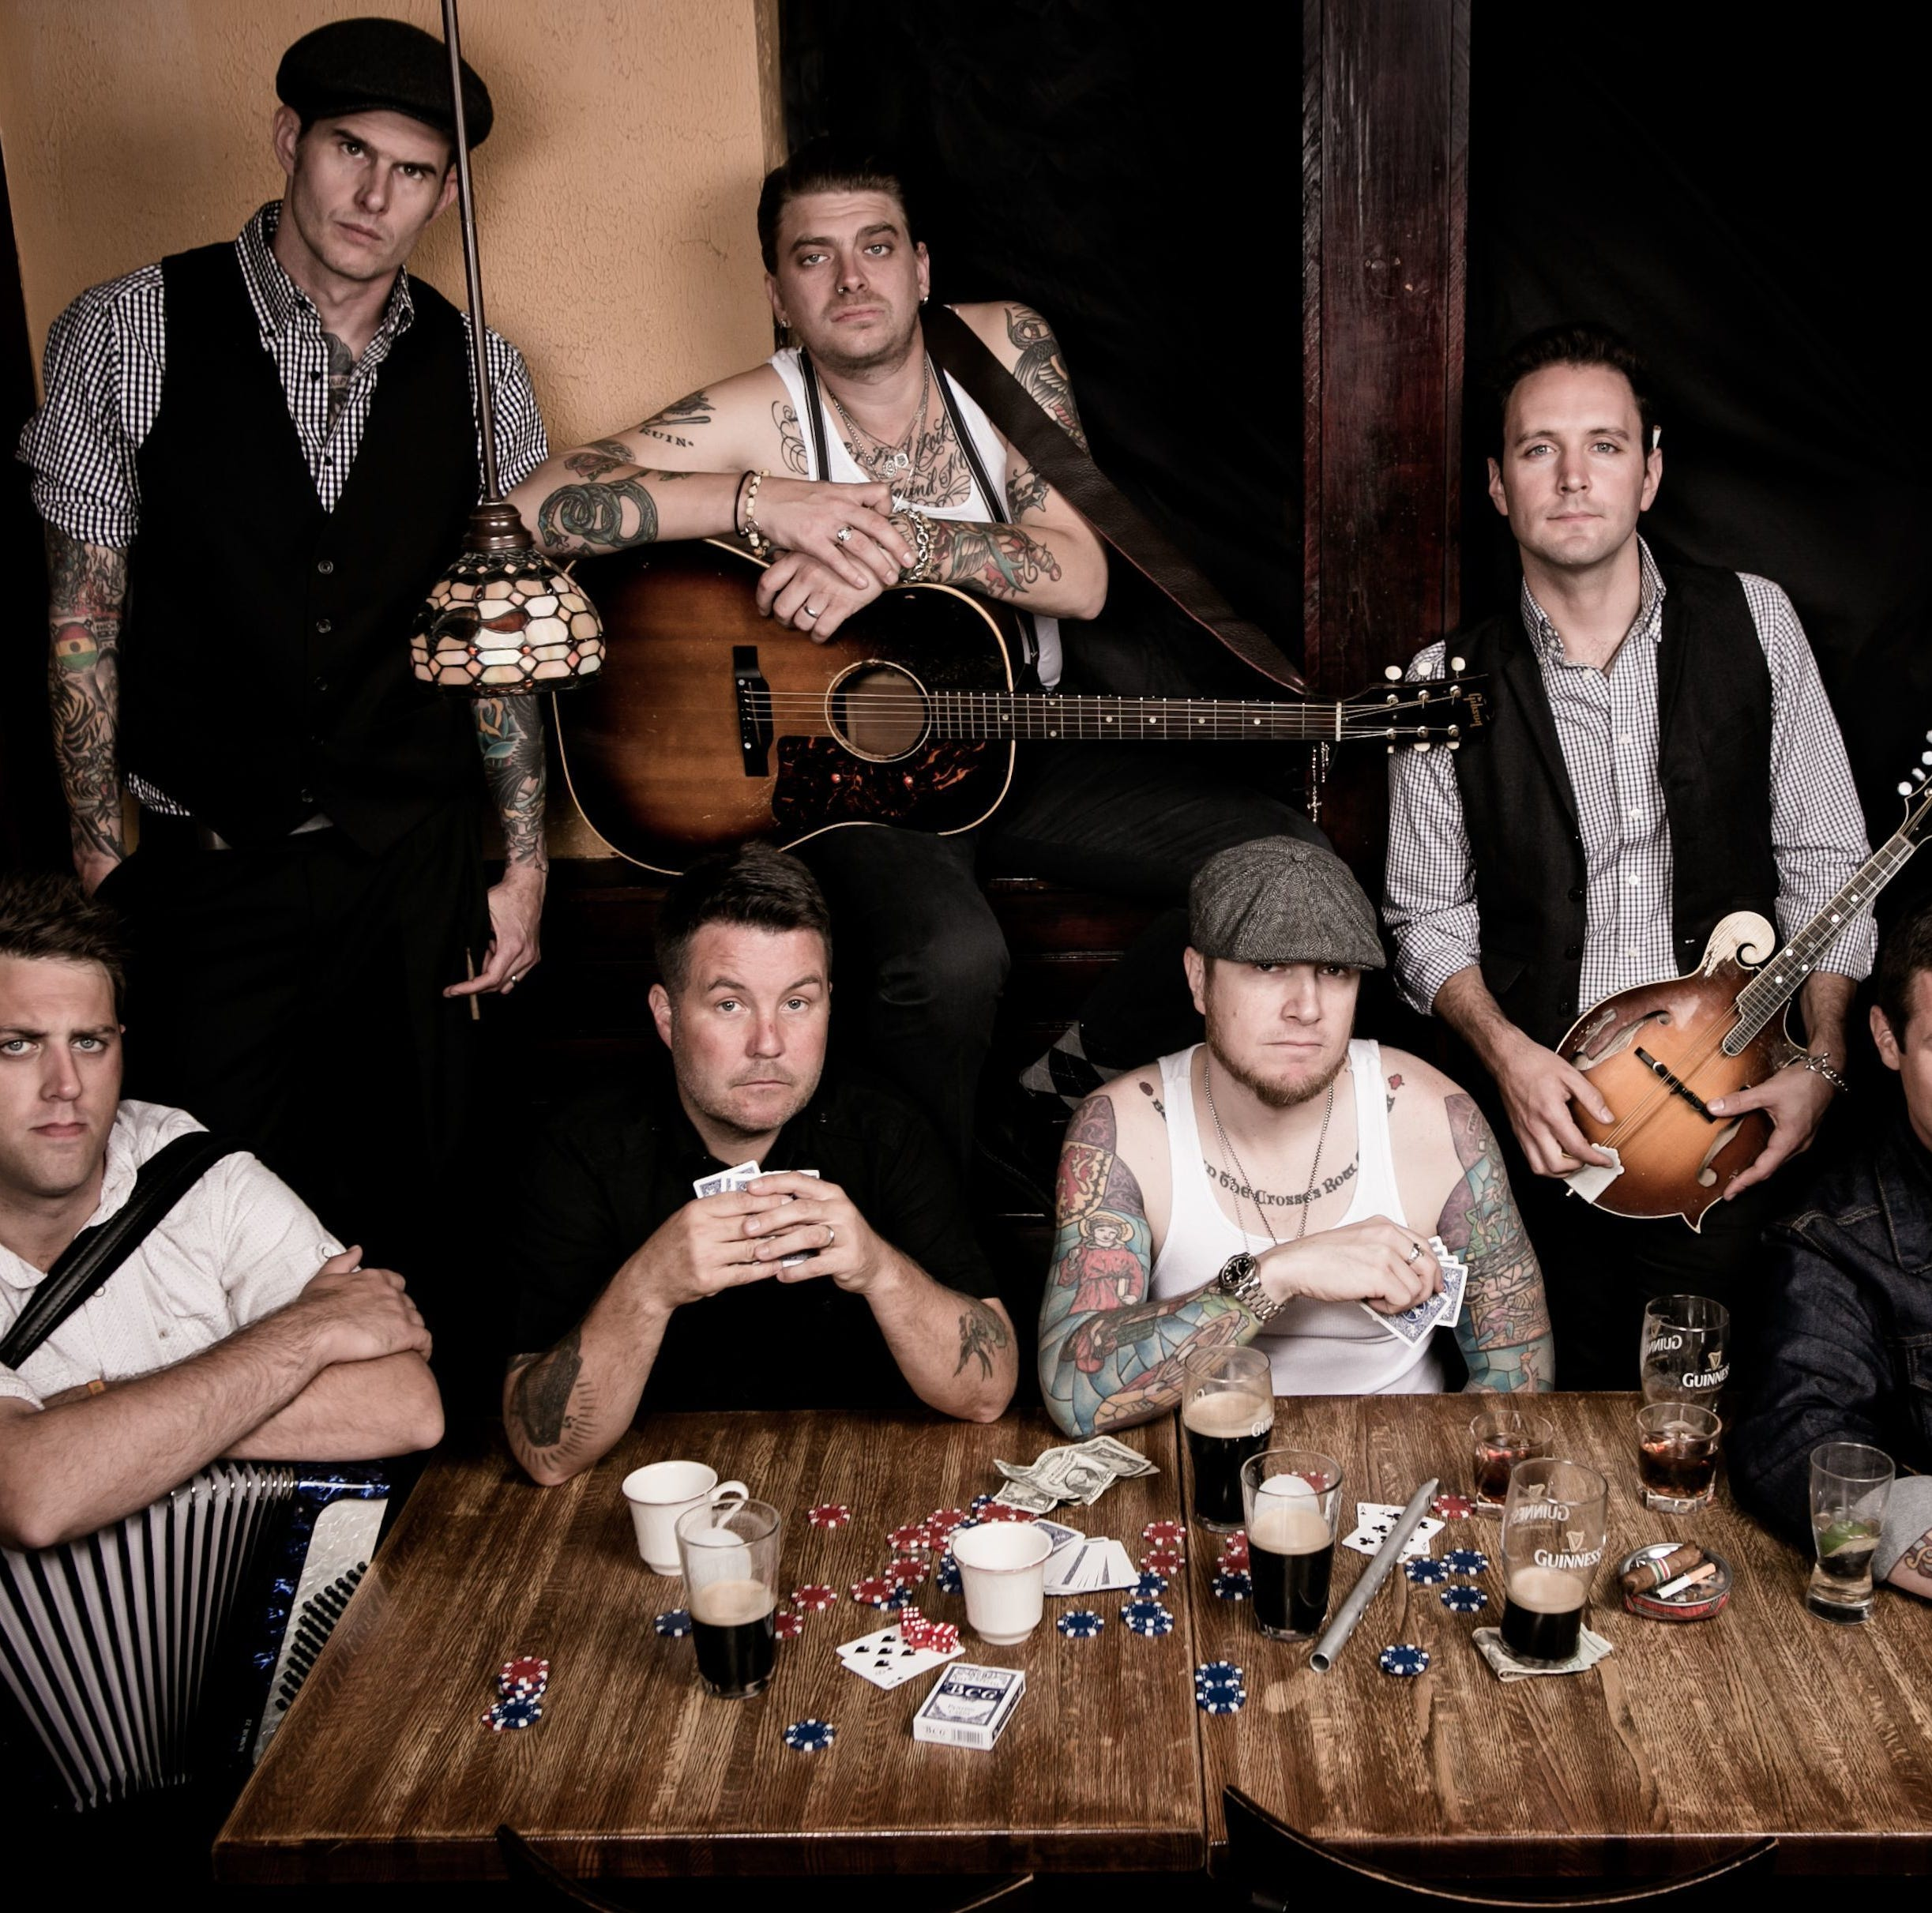 Dropkick Murphys shipping down to Florida before St. Patrick's Day - Hot Ticket